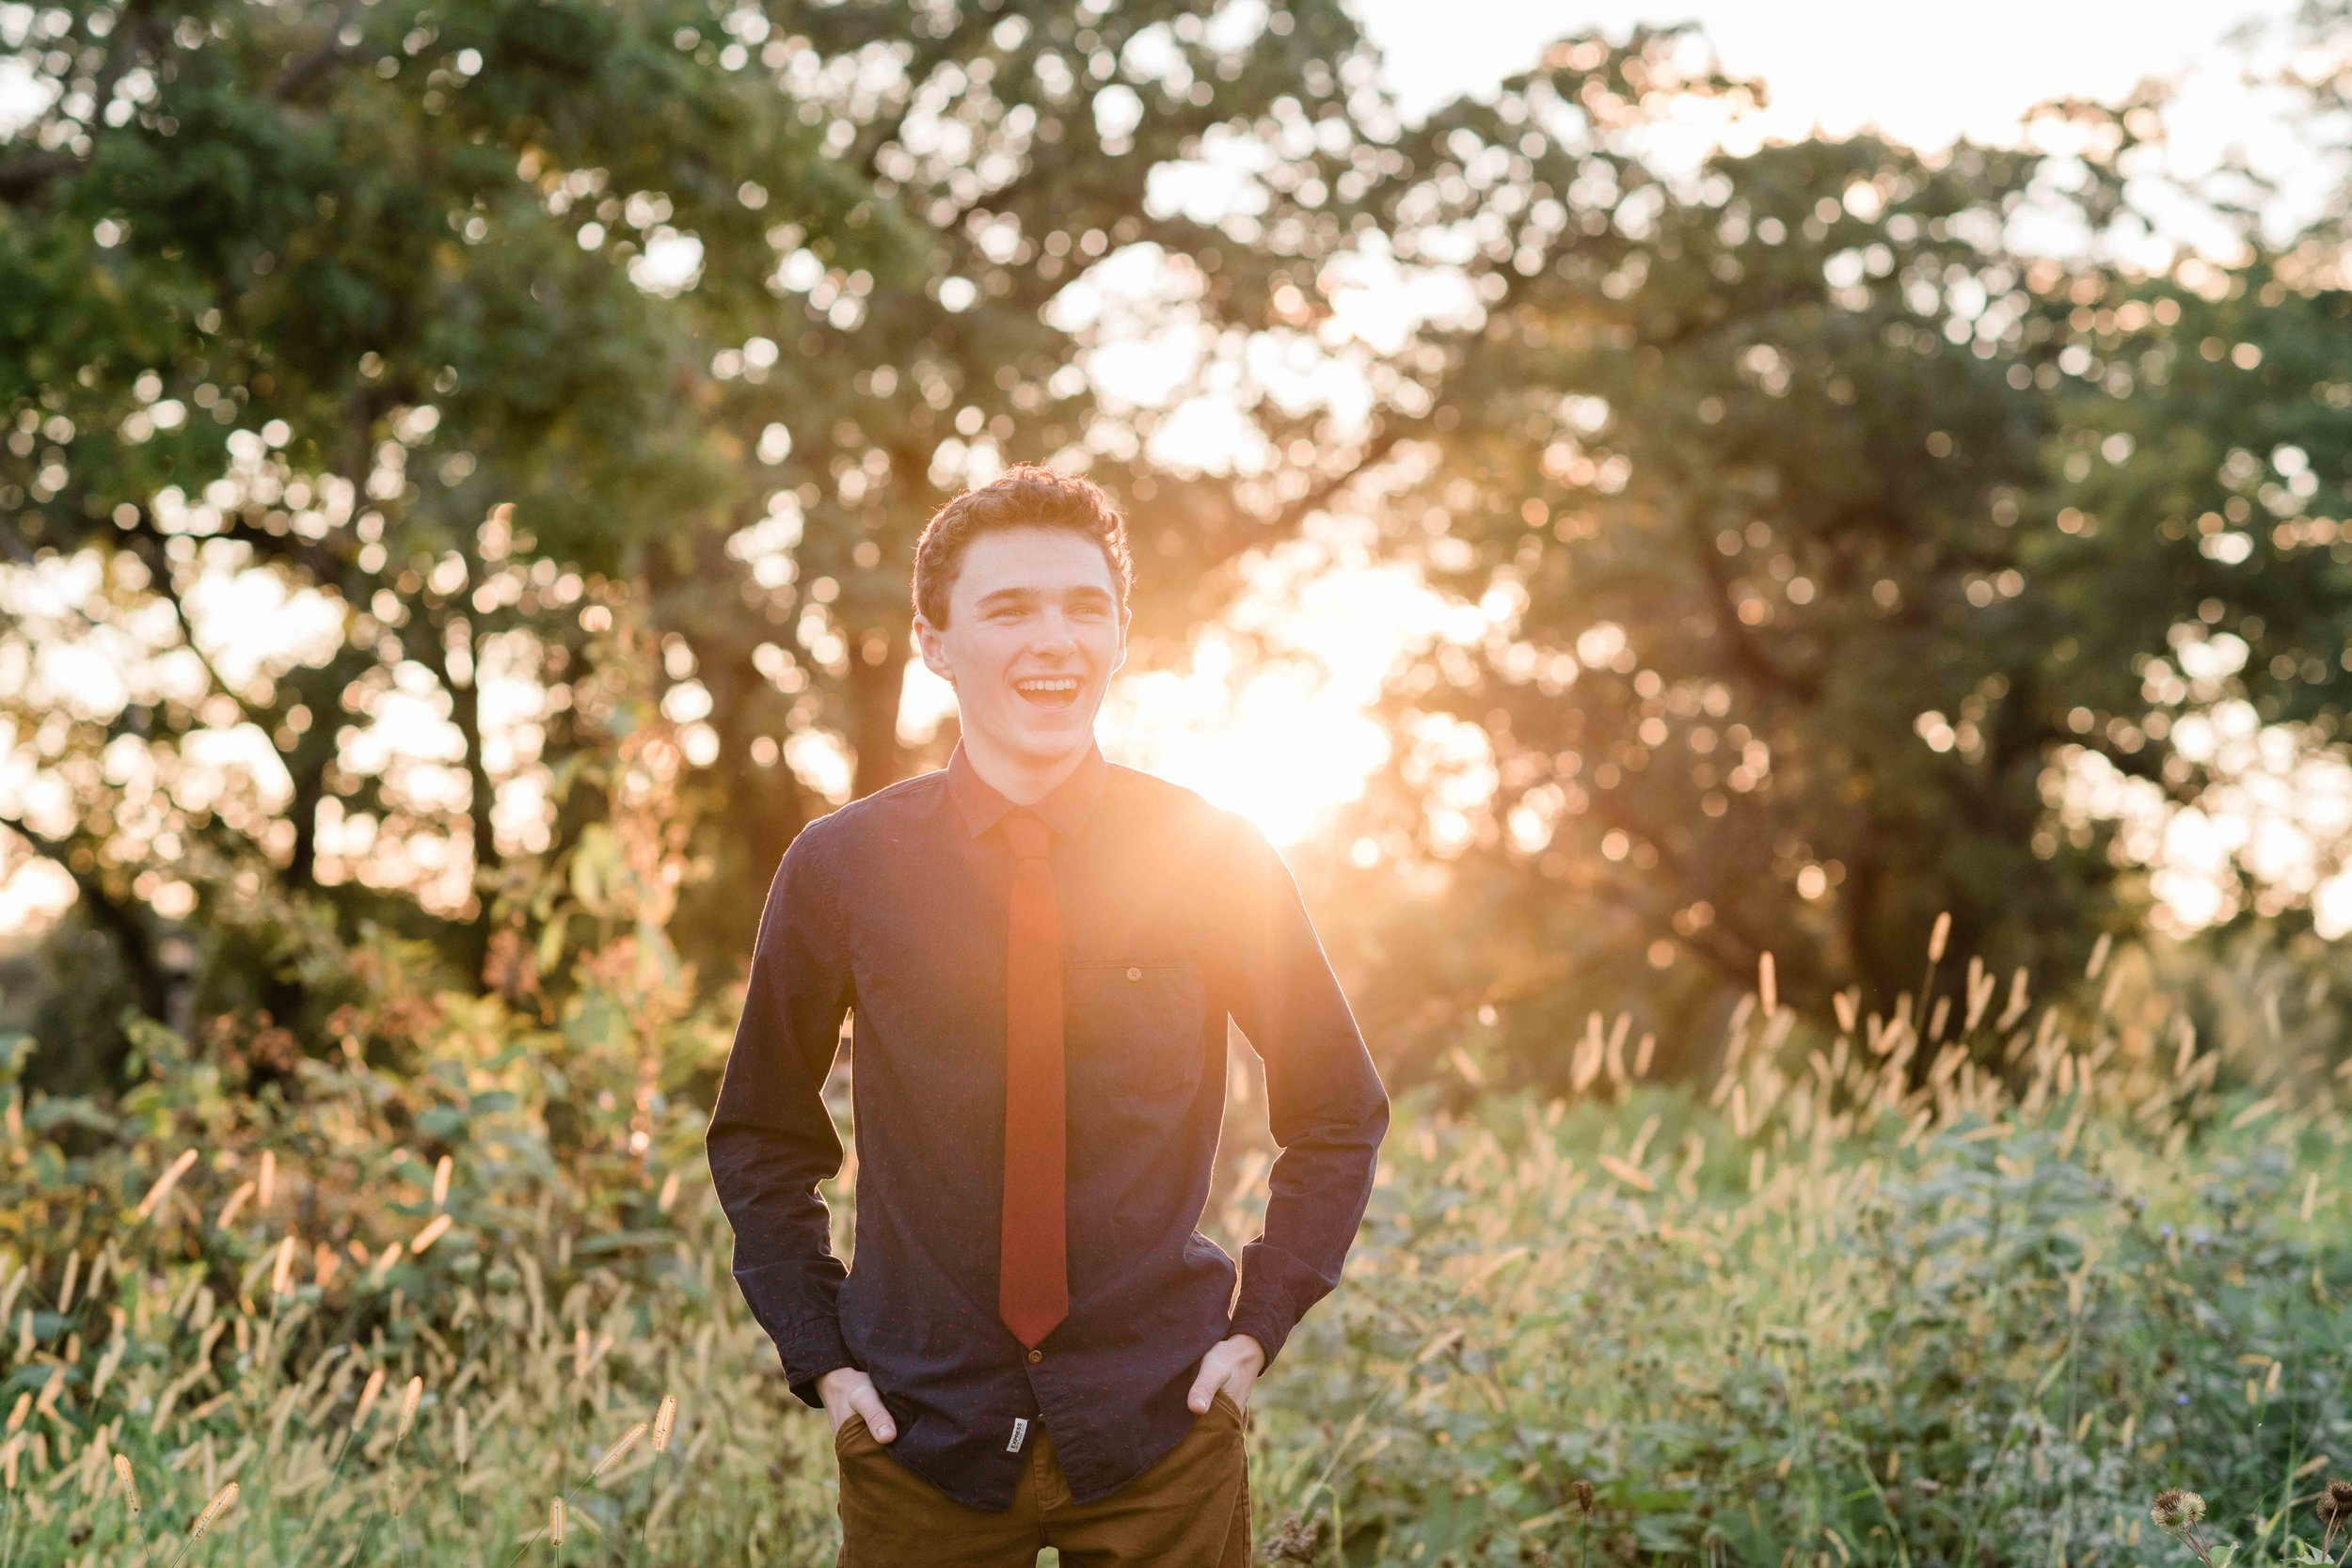 High school senior backlit by the sun